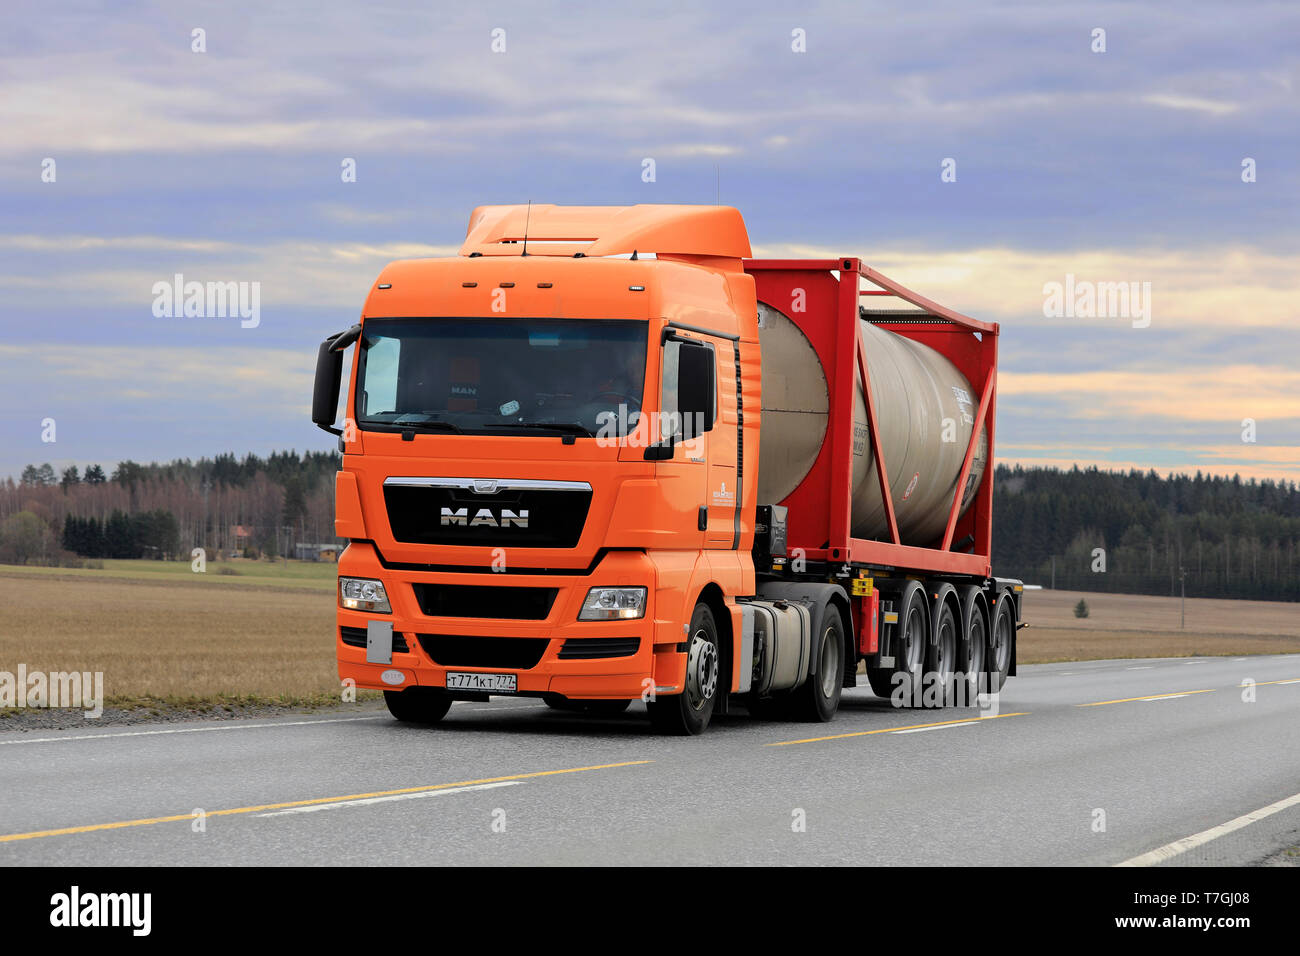 Jokioinen, Finland - April 22, 2019: Orange MAN TGX 18.440 truck transports bulk liquid container along highway 2 in South of Finland. - Stock Image